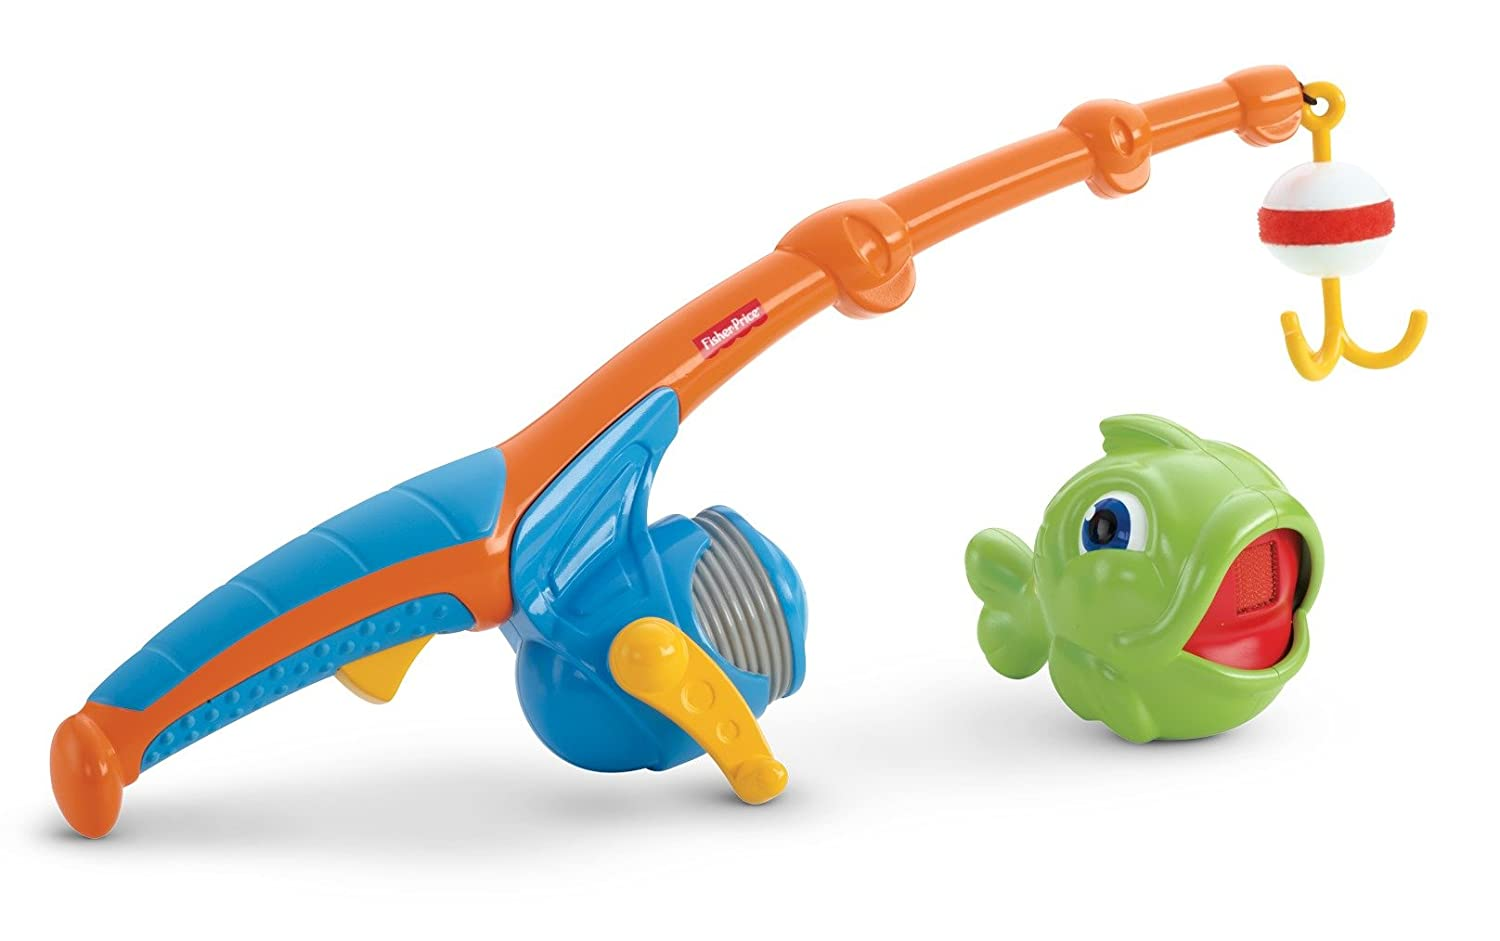 Amazon.com: Fisher-Price Fishing Pole: Toys & Games